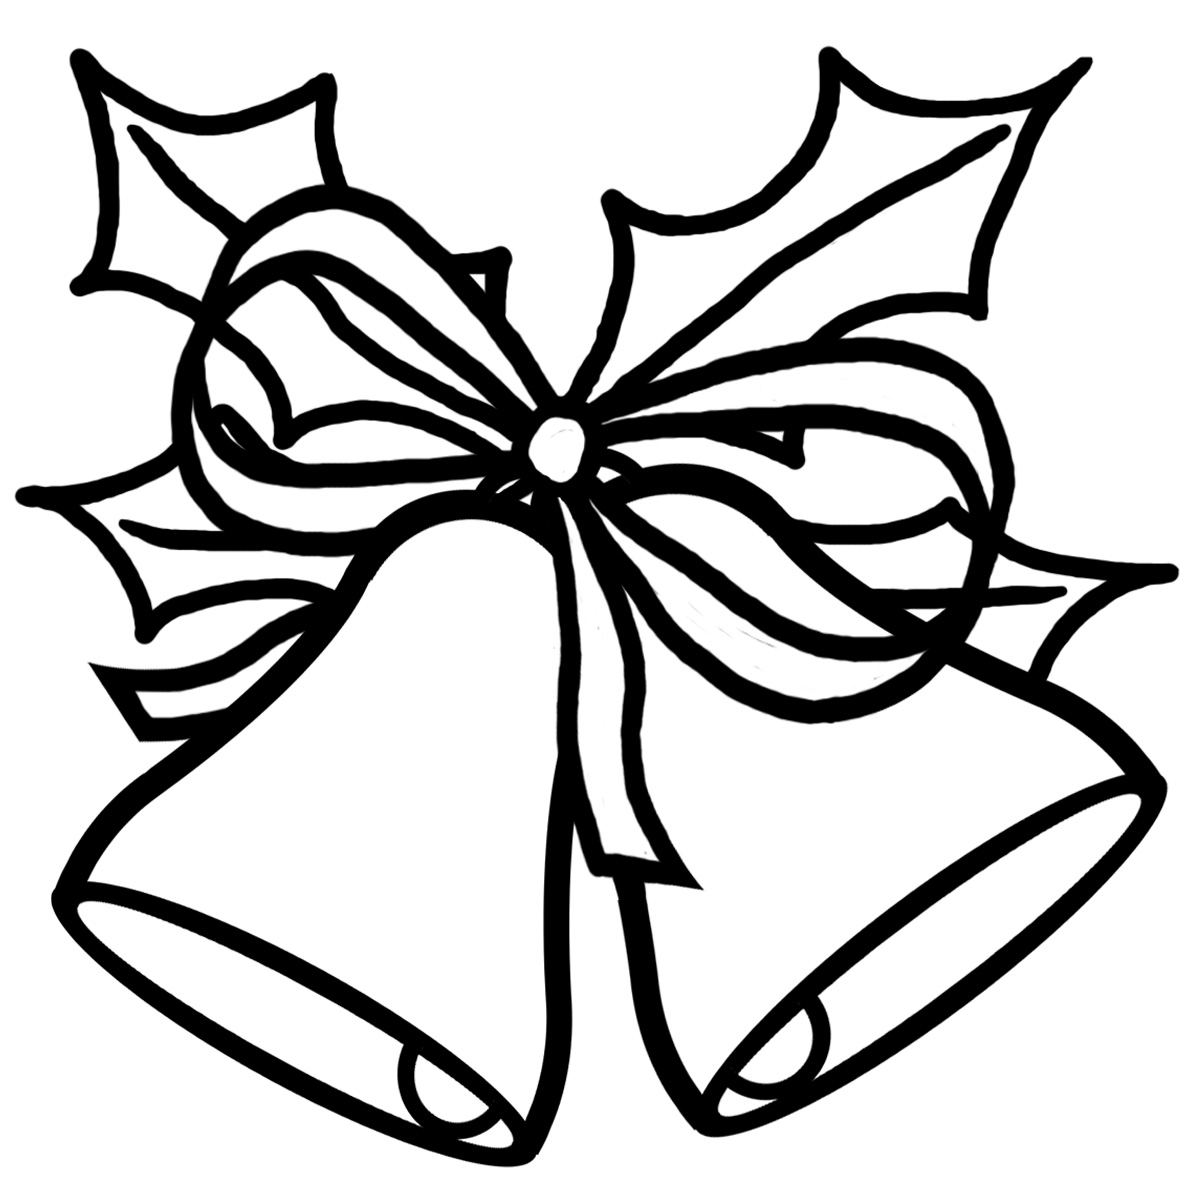 Simple Black And White Christmas Clipart - Clipart Suggest